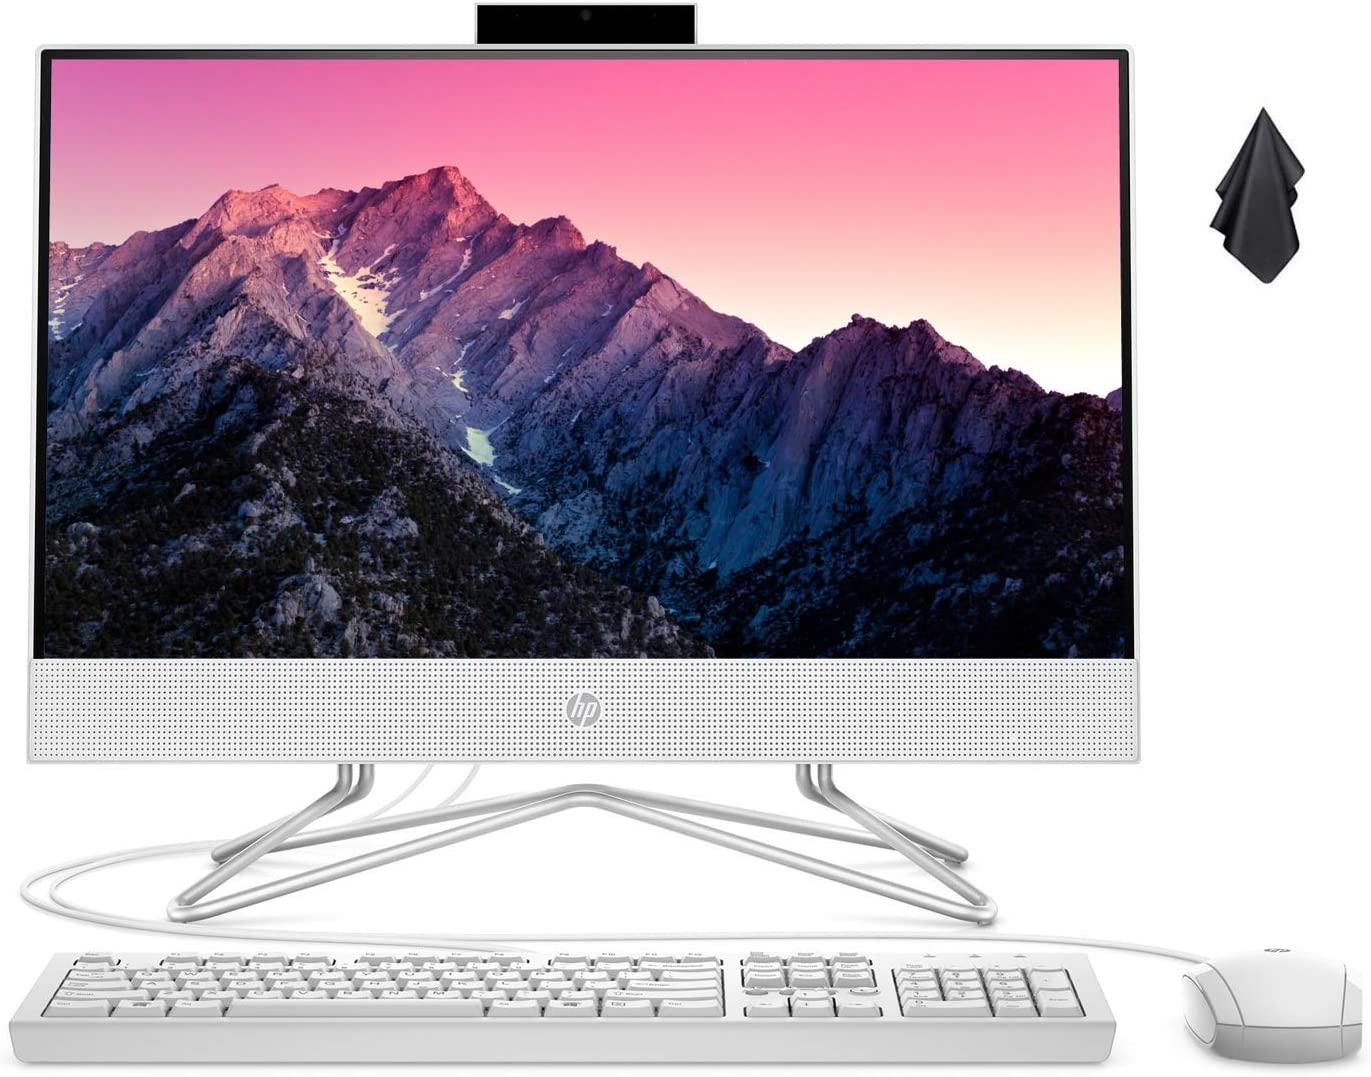 2021 Newest HP 22 All-in-One Desktop Computer, 21.5